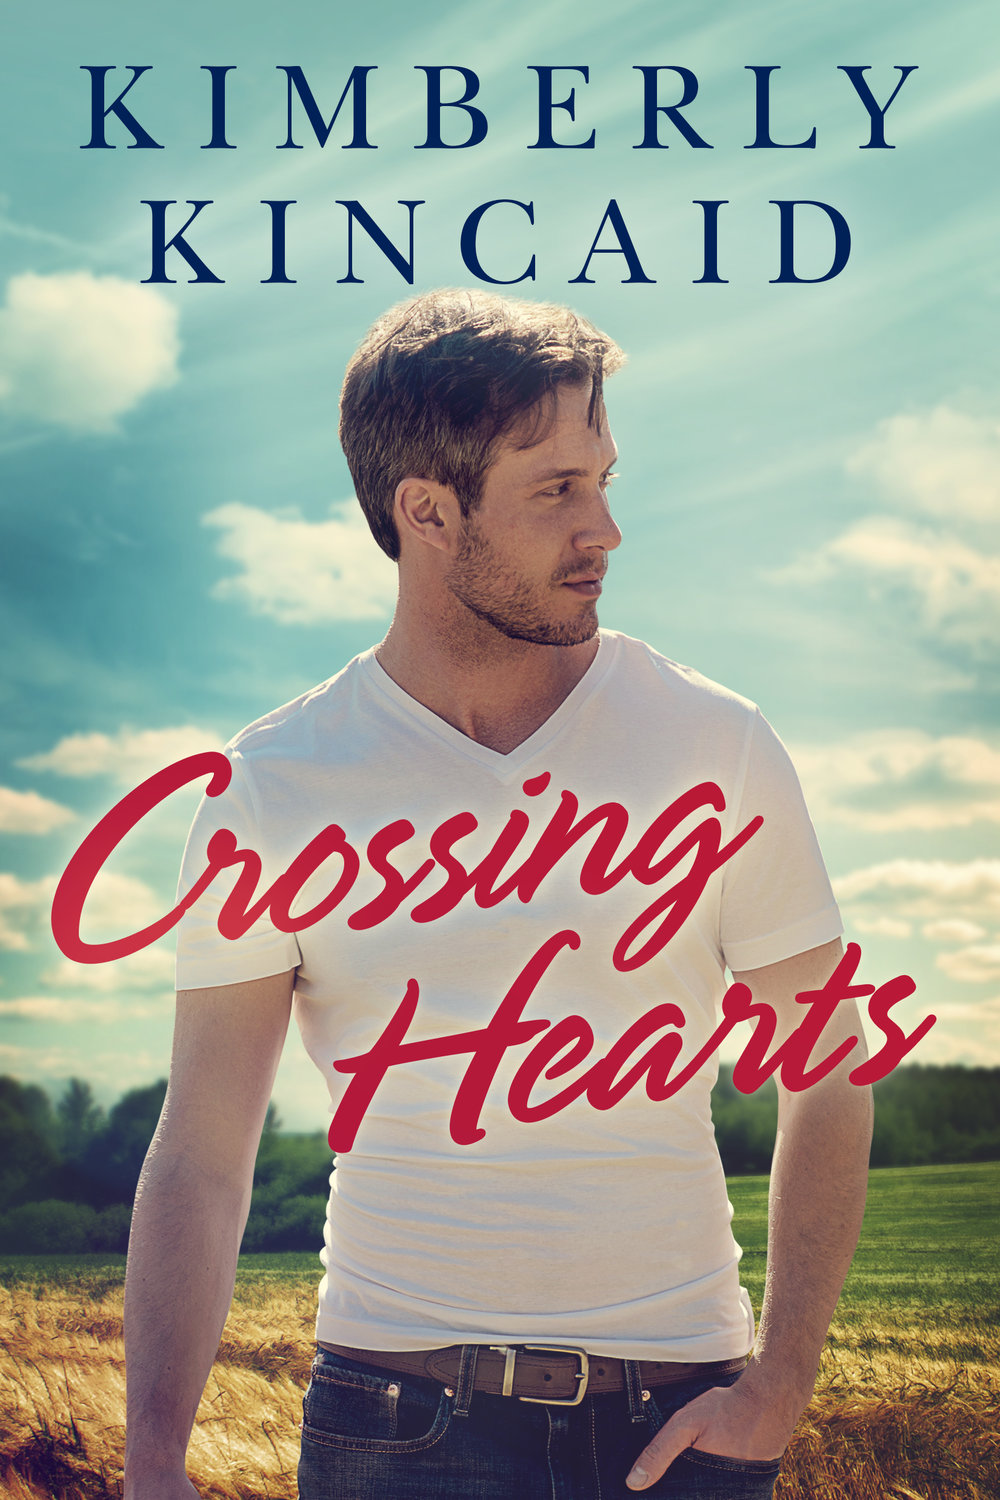 Crossing Hearts final cover.jpg